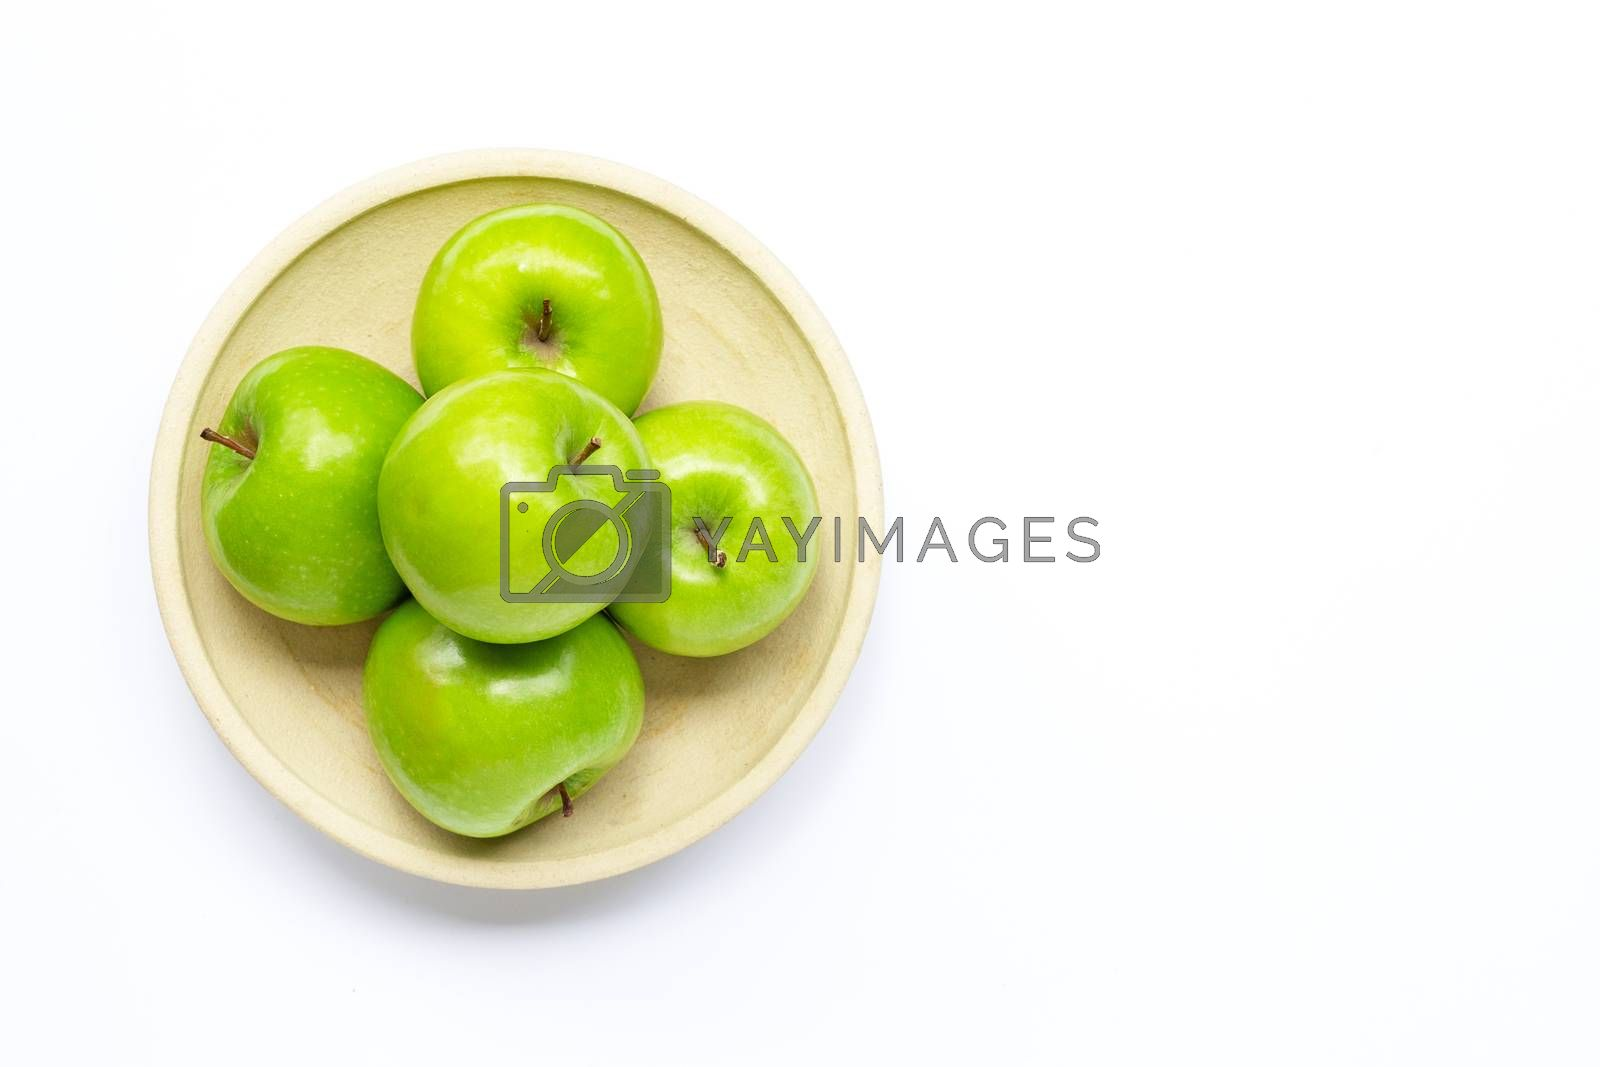 Fresh green apples on pottery plate on white background. Copy space